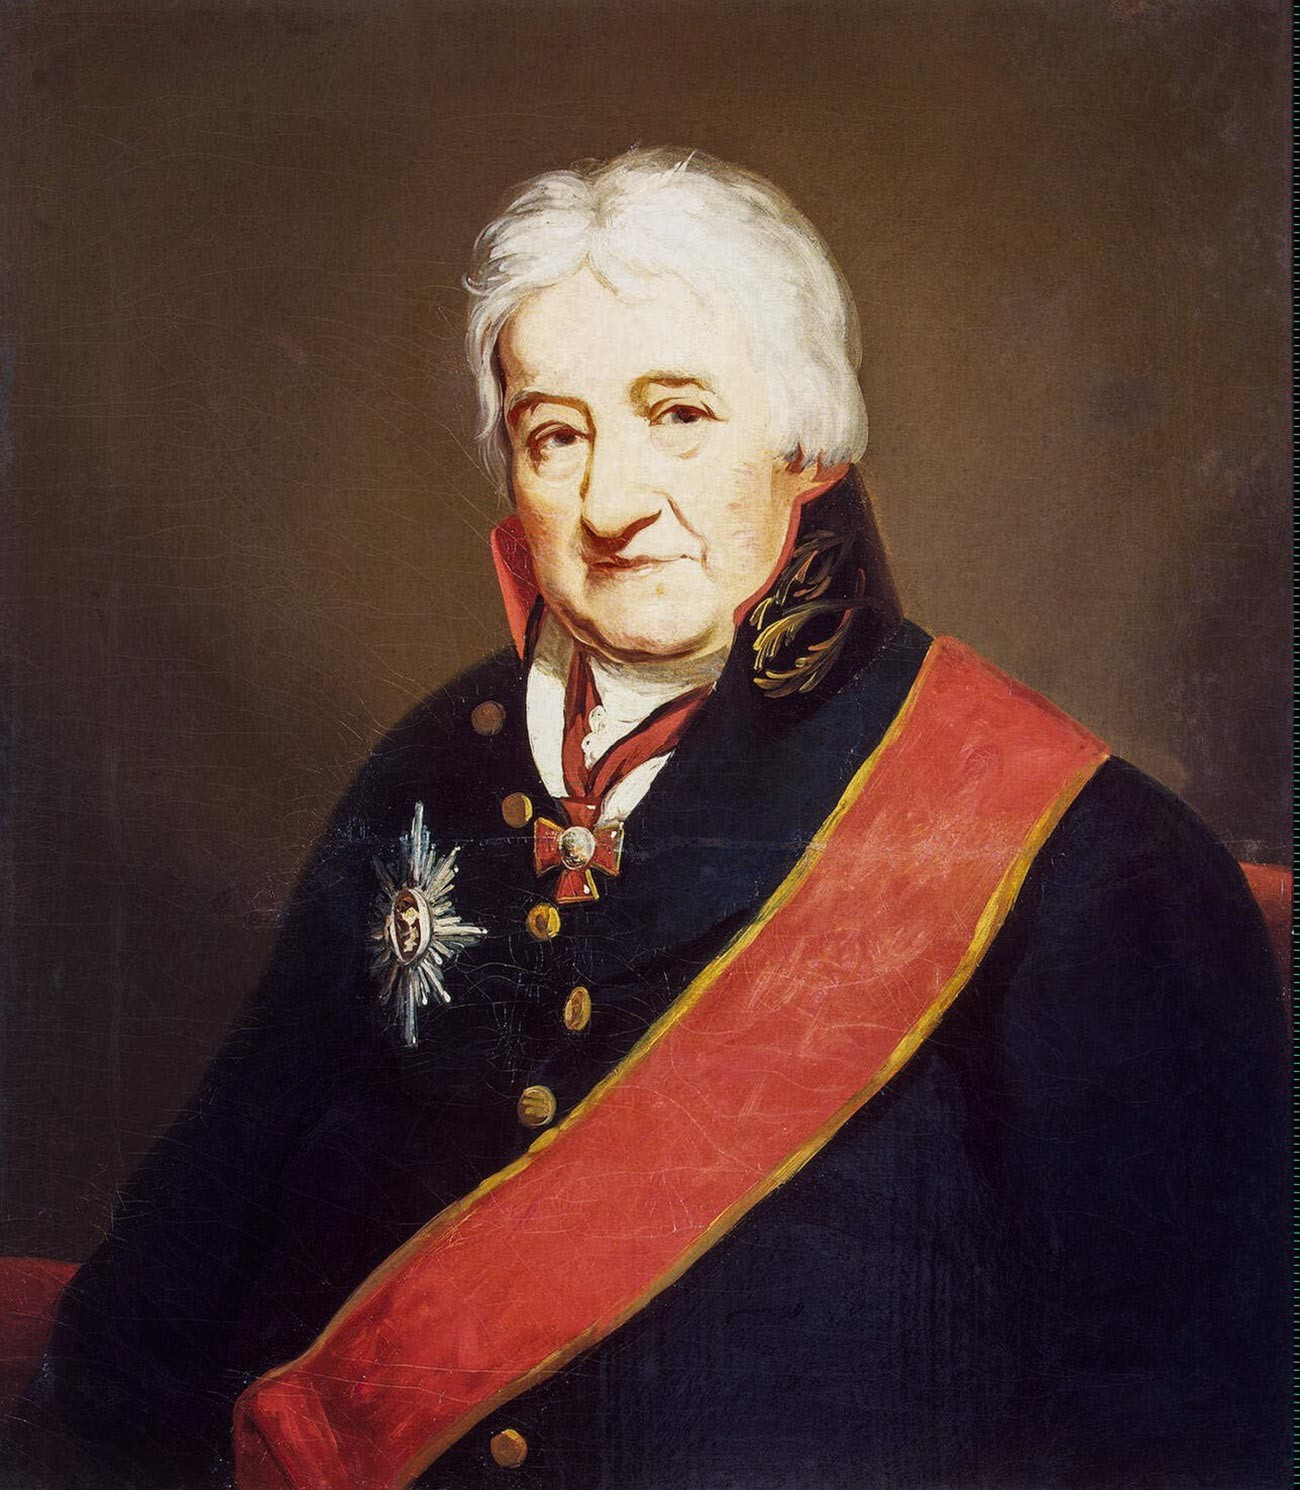 Charles Gascoigne by James Saxon, circa 1804